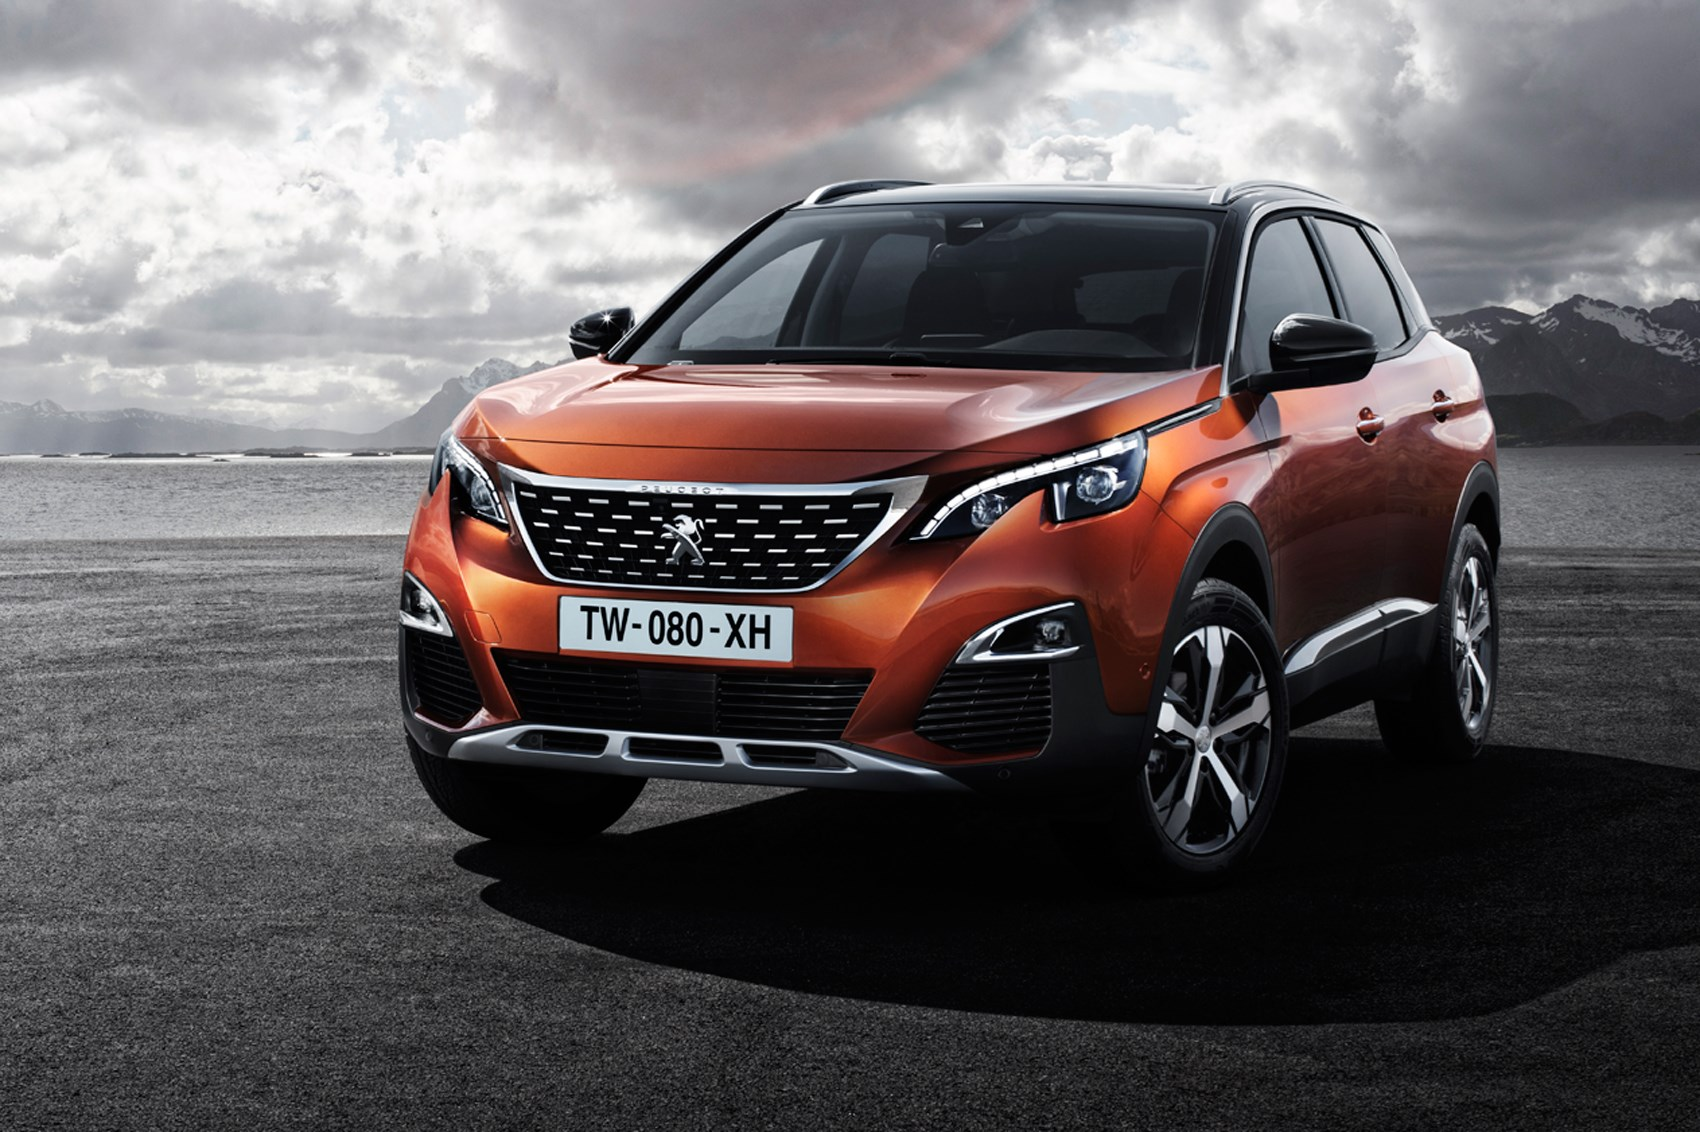 peugeot 3008 revealed a new suv look for pug s 2016 family crossover by car magazine. Black Bedroom Furniture Sets. Home Design Ideas